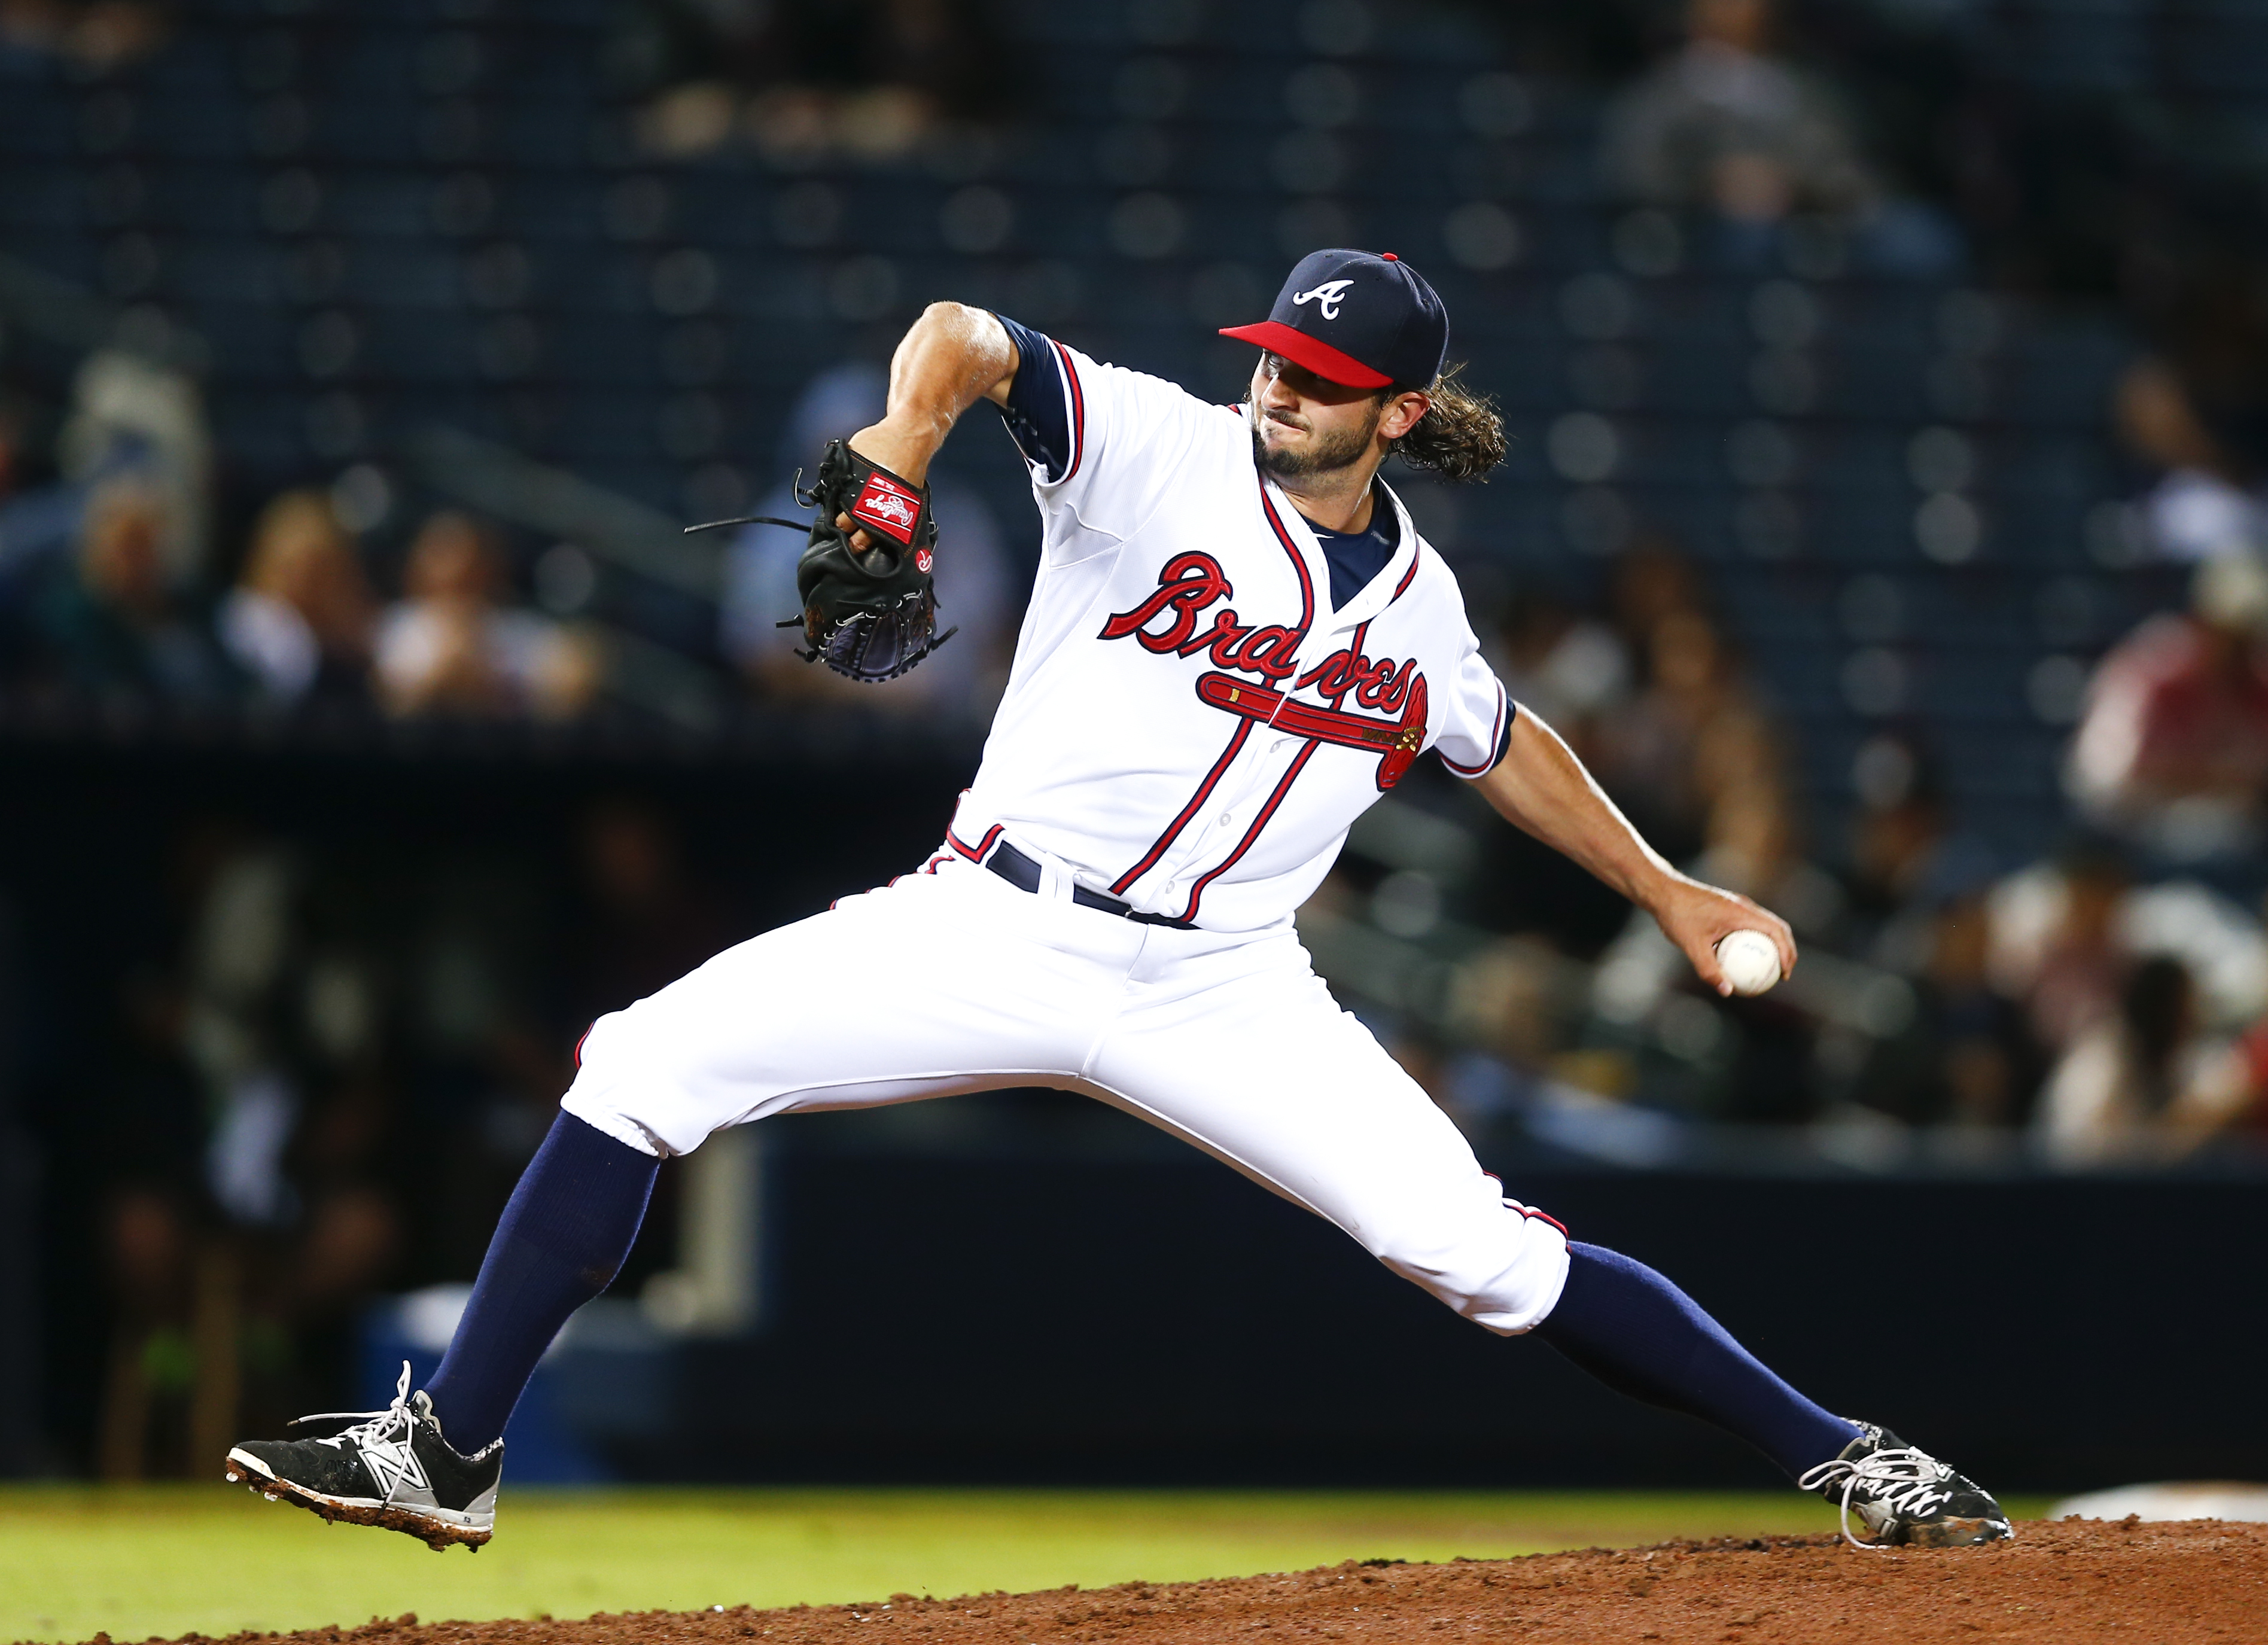 In this April 14, 2015 photo, Atlanta Braves relief pitcher Andrew McKirahan (52) delivers a pitch against the Miami Marlins during a baseball game, in Atlanta.  on Monday, April 20, McKirahan has been suspended for 80 games following a positive test for